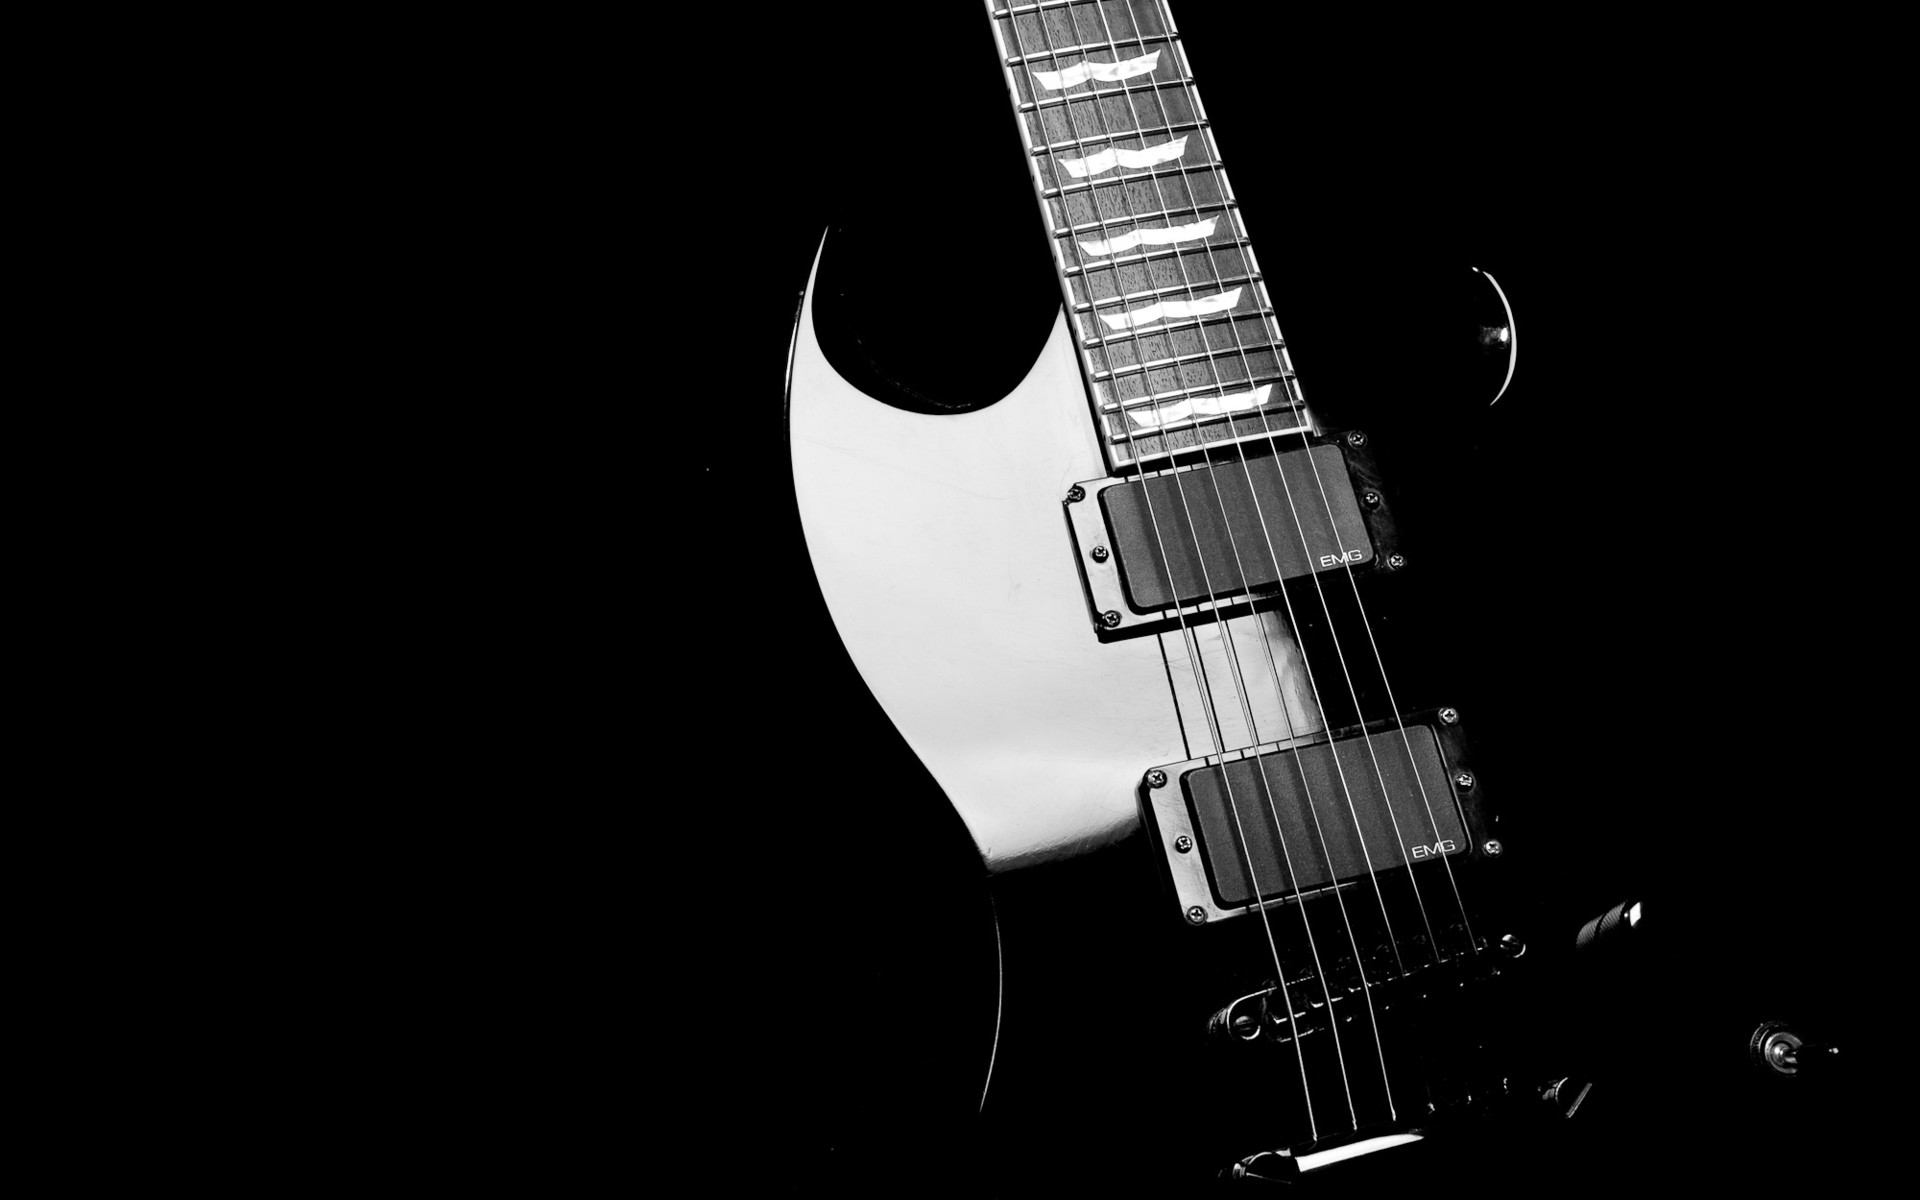 Guitar HD Pictures Guitar HD Pictures Pinterest Pictures | HD Wallpapers |  Pinterest | Guitars, Black wallpaper and Wallpaper